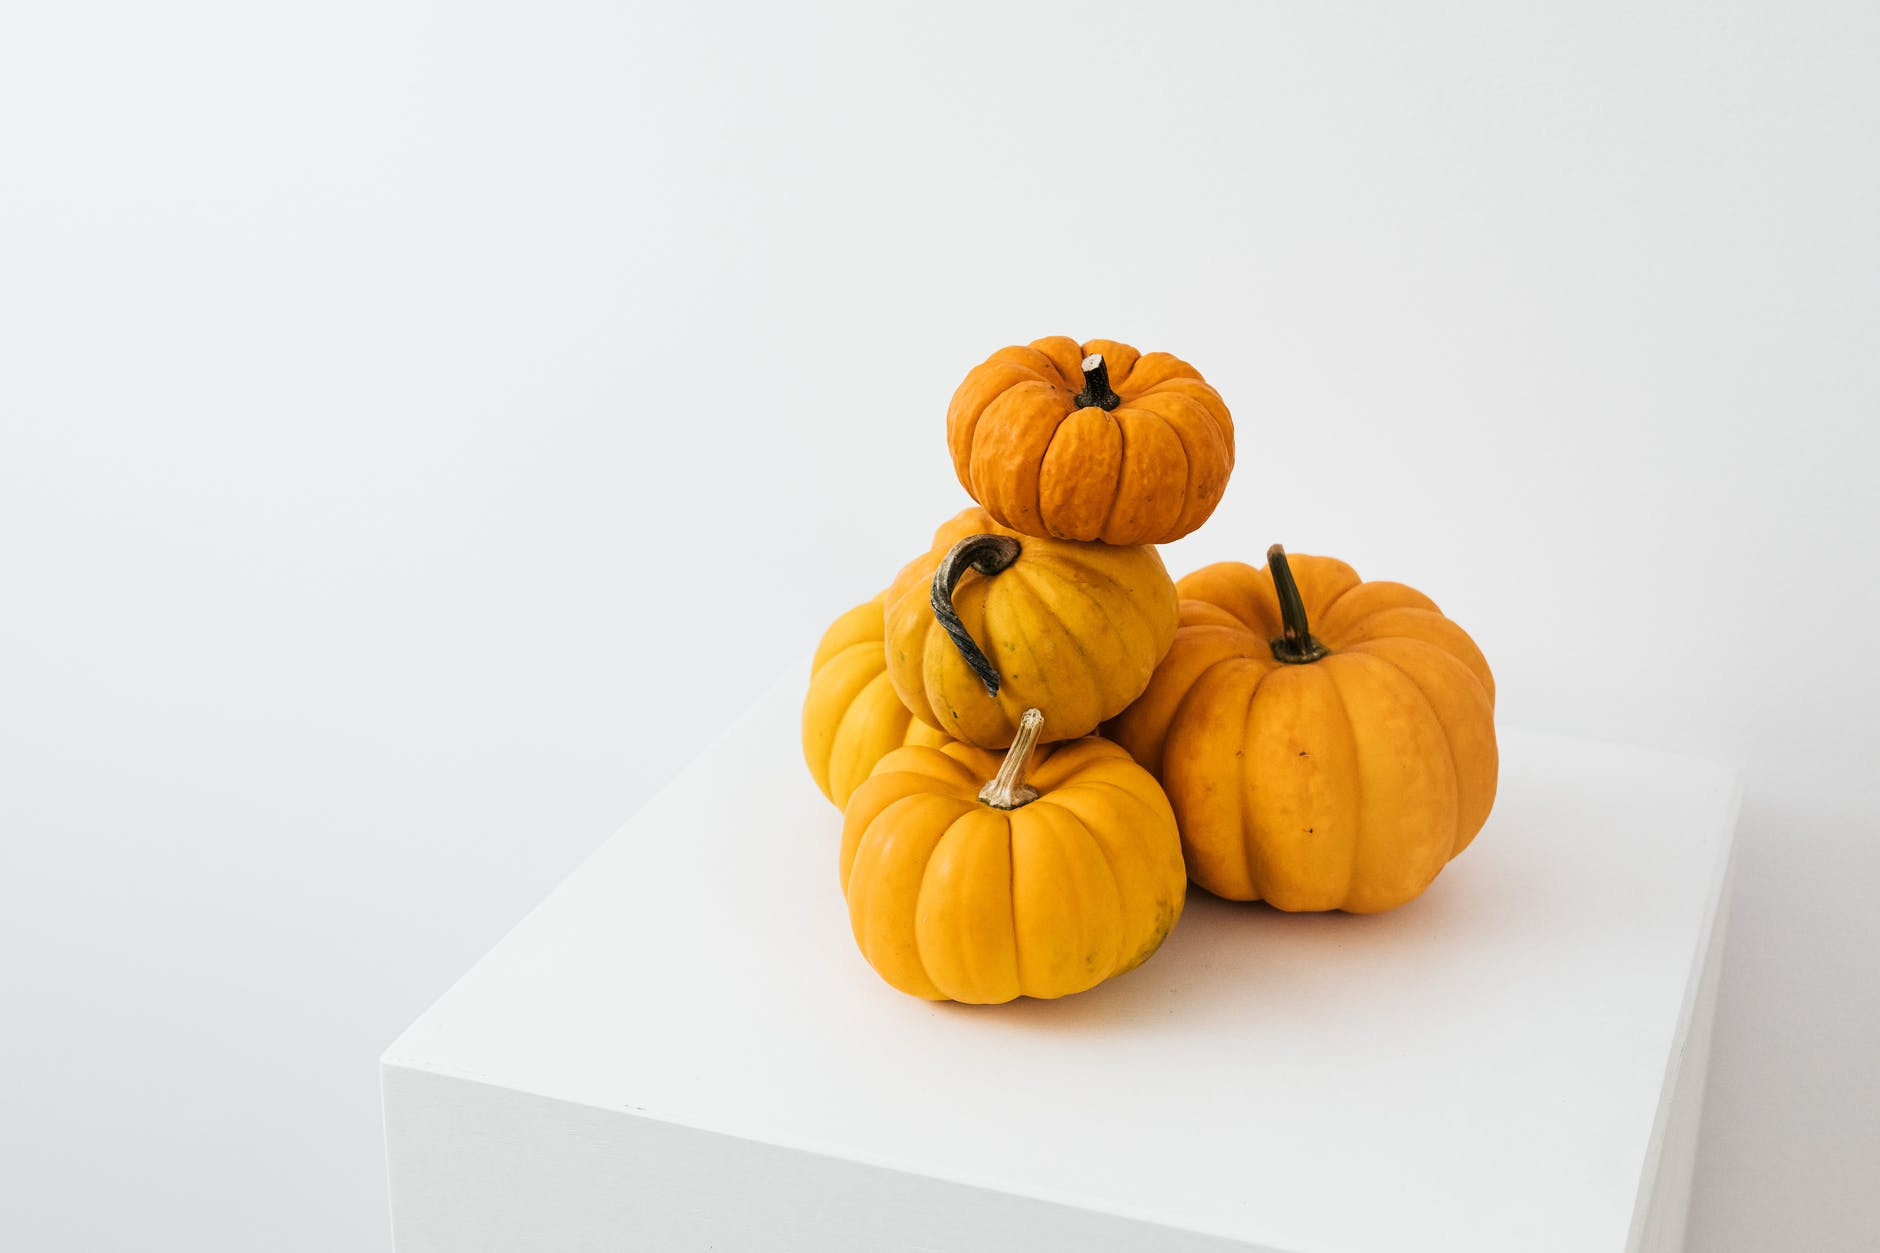 A group of pumpkins  Description automatically generated with low confidence